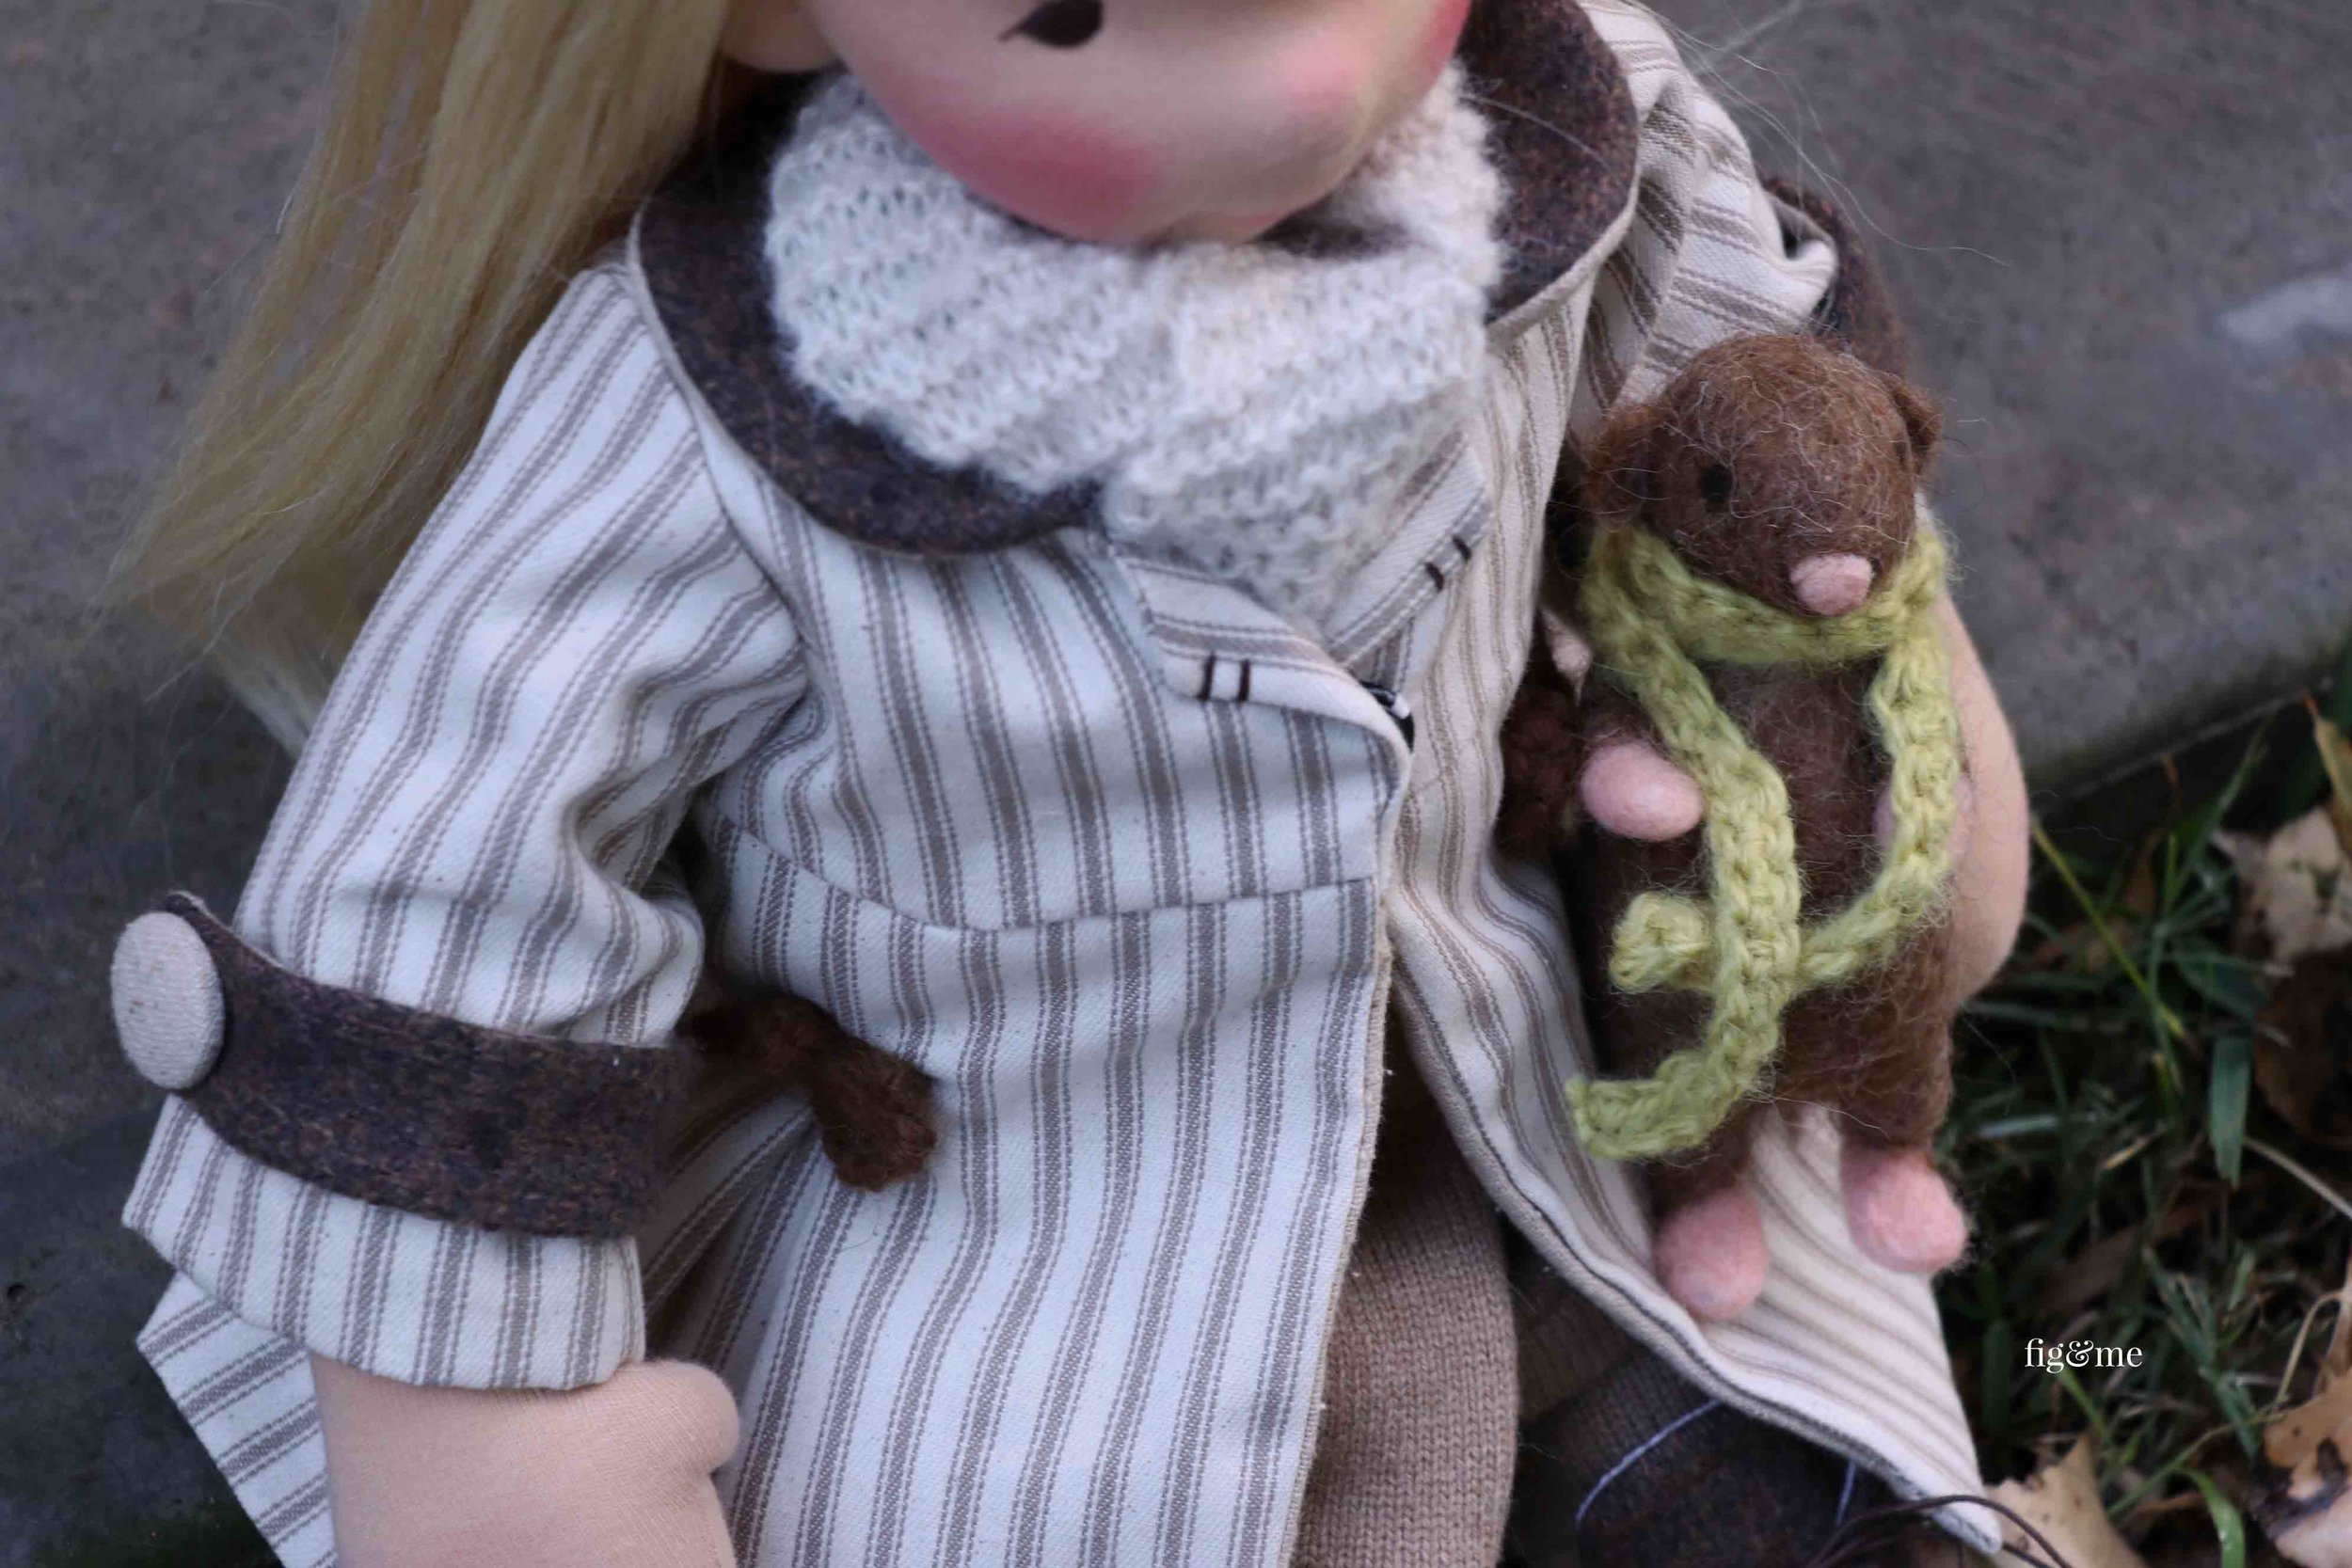 Aspen, caring for her little rat (named Twig) and wearing her twill coat. By Fig and Me.